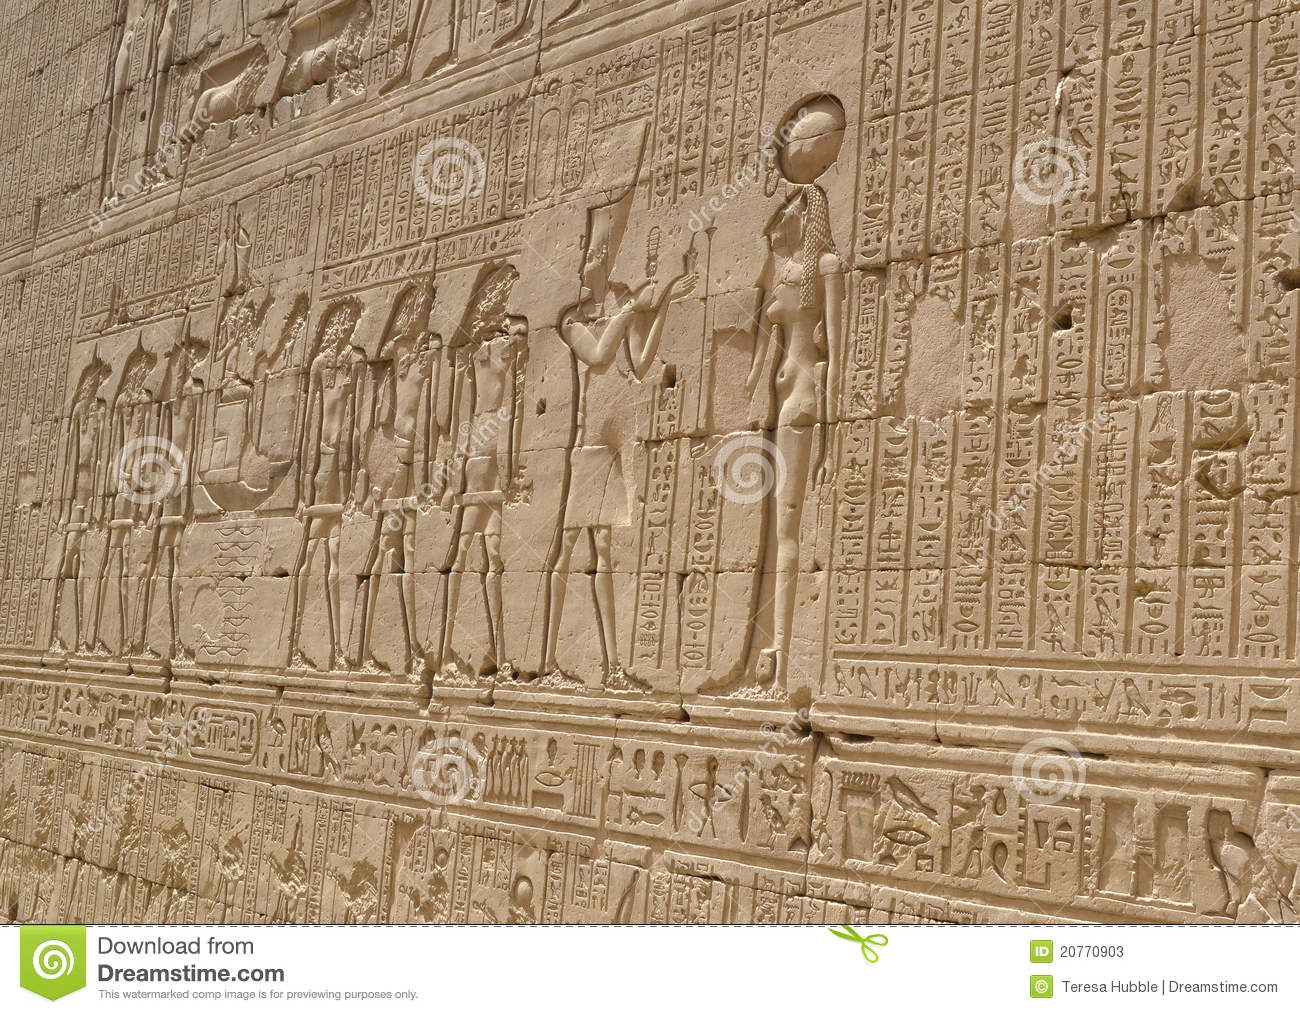 https://thumbs.dreamstime.com/z/hieroglyphic-carvings-egyptian-temple-wall-20770903.jpg